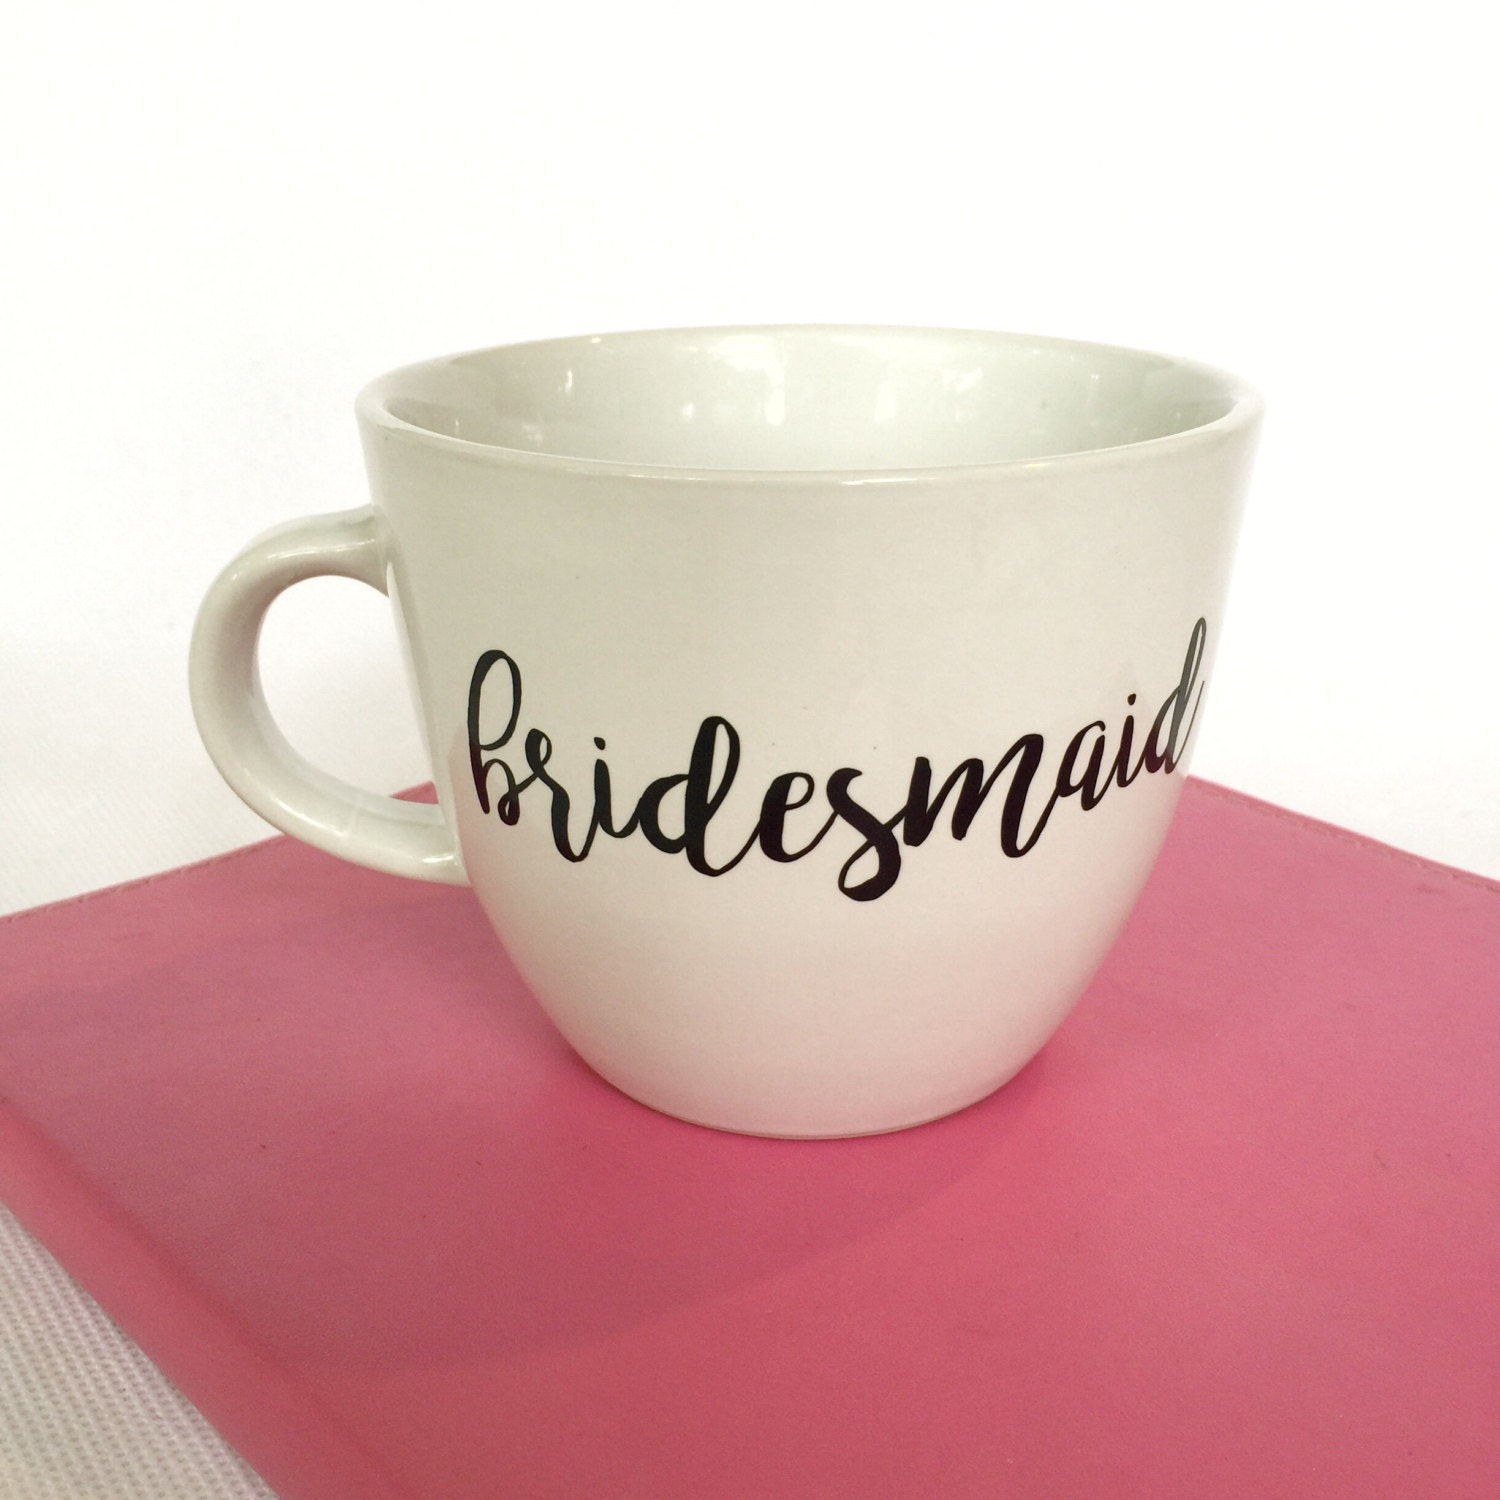 Bridesmaid Coffee Mug Bridesmaid Gift Bridesmaid Proposal | Etsy